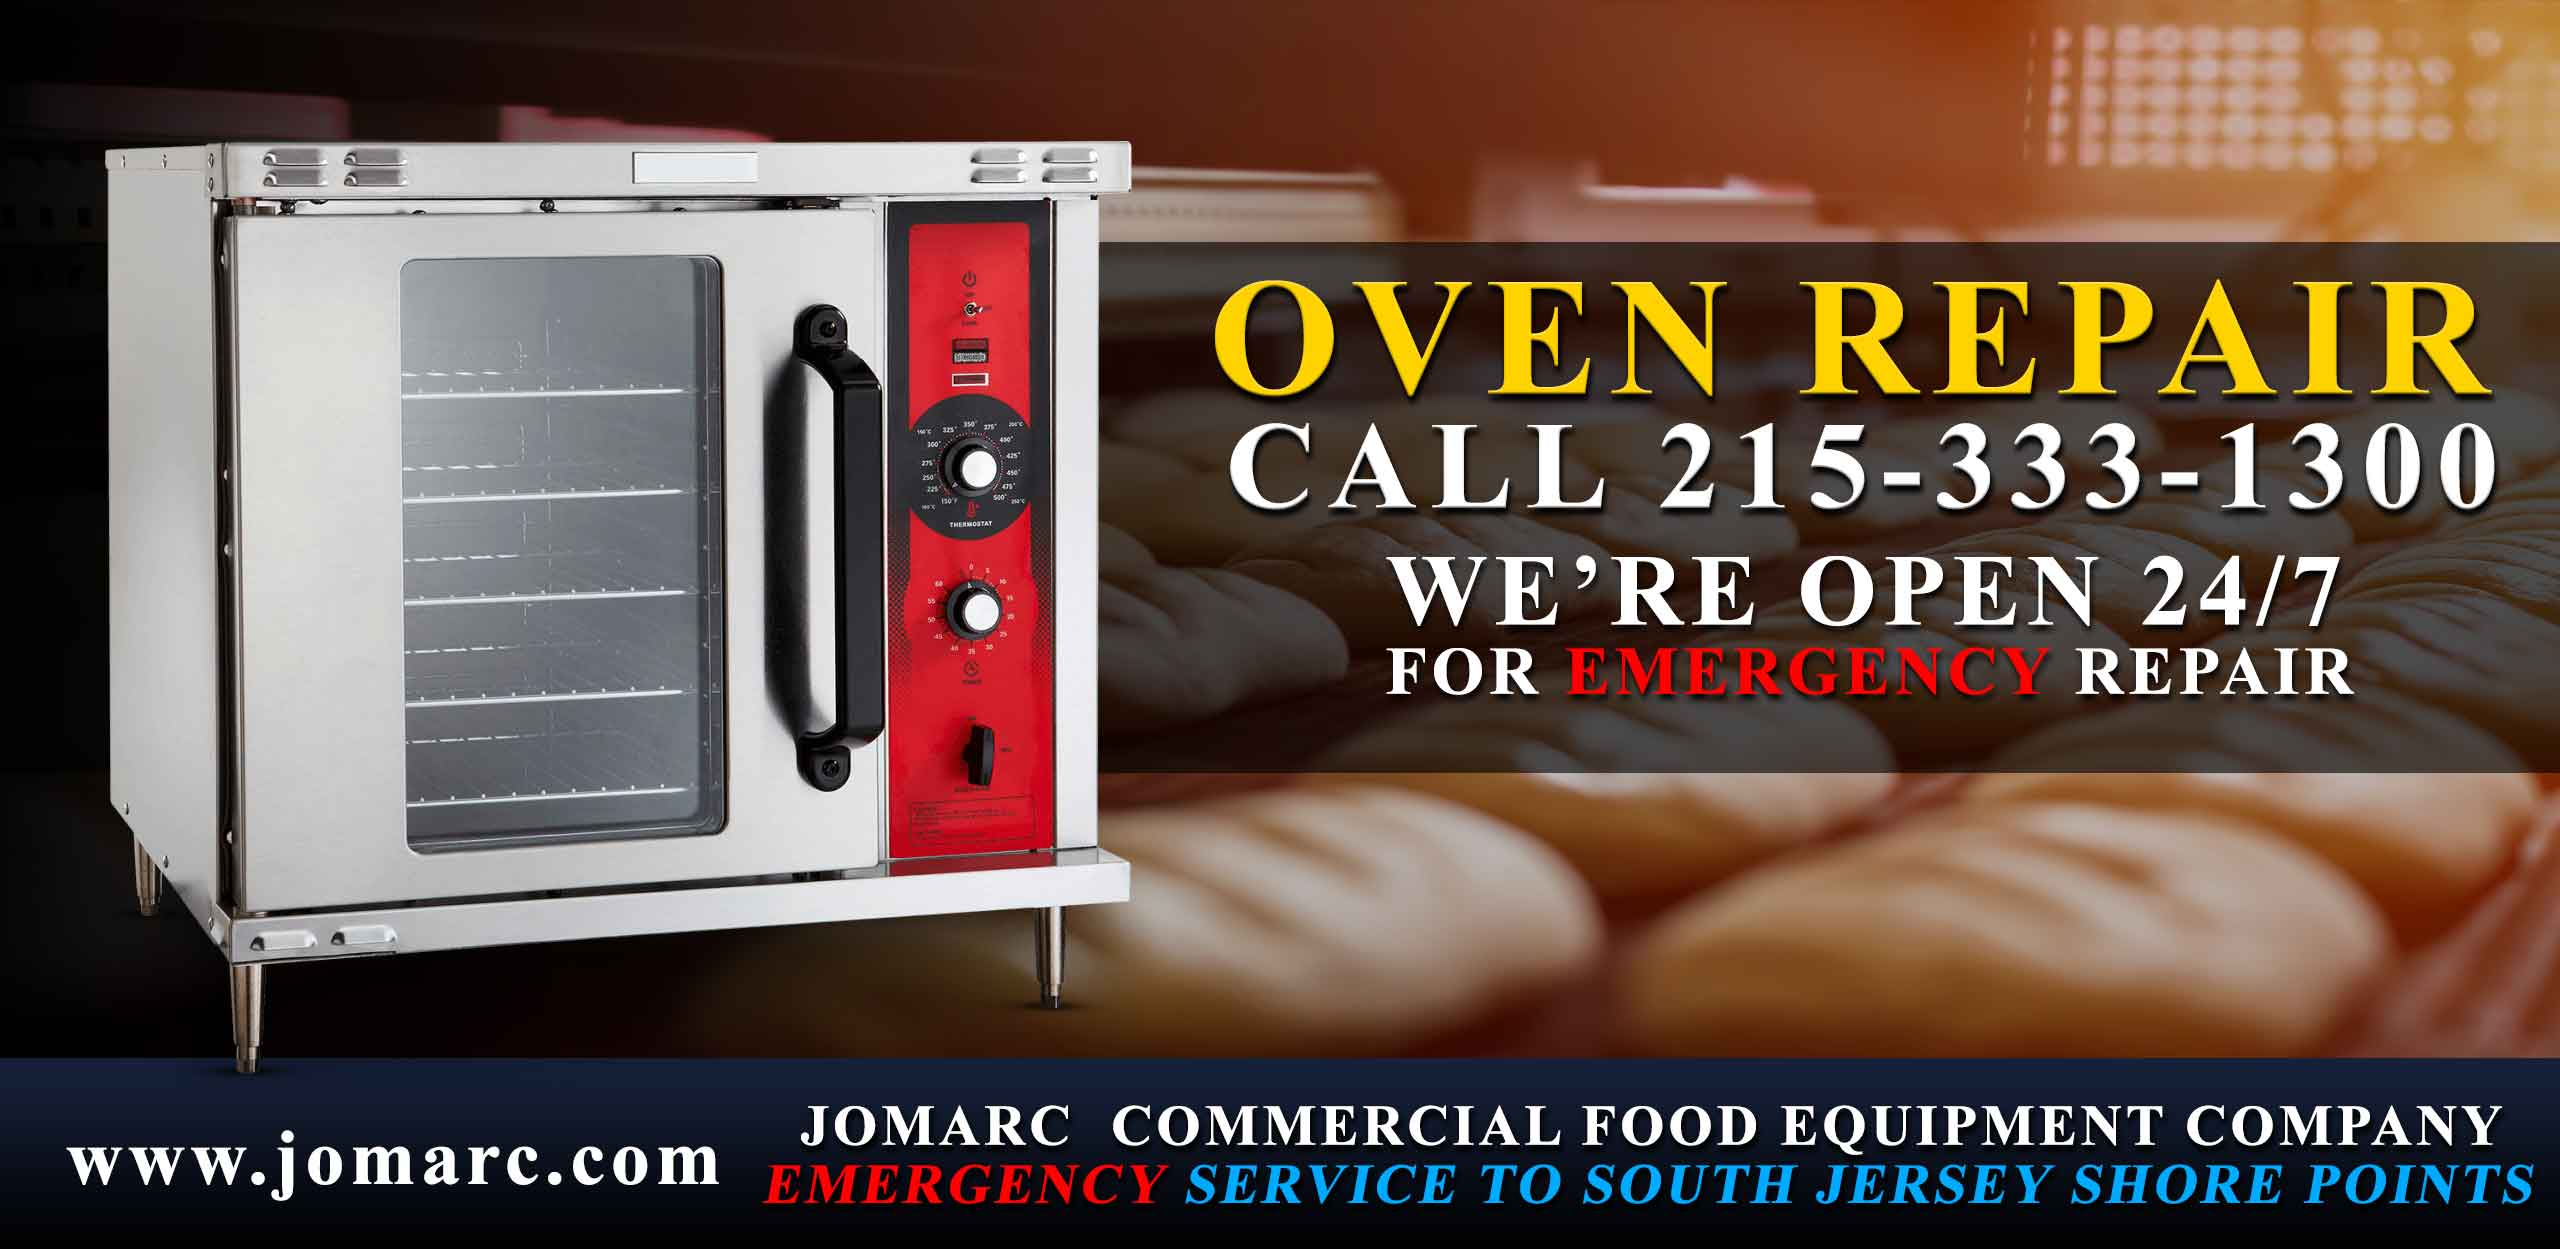 Jomarc services all brands and models of commercial ovens: Alto-Shaam, Amana, Avantco, Axis, Bakers Pride, Blodgett, Cres Cor, Convotherm, Cooking Performance Group, Doyon, Galaxy Garland / US Range, Global Solutions by Nemco, Merrychef, NU-VU, Rational Solwave TurboChef Vollrath Vulcan Waring Wells